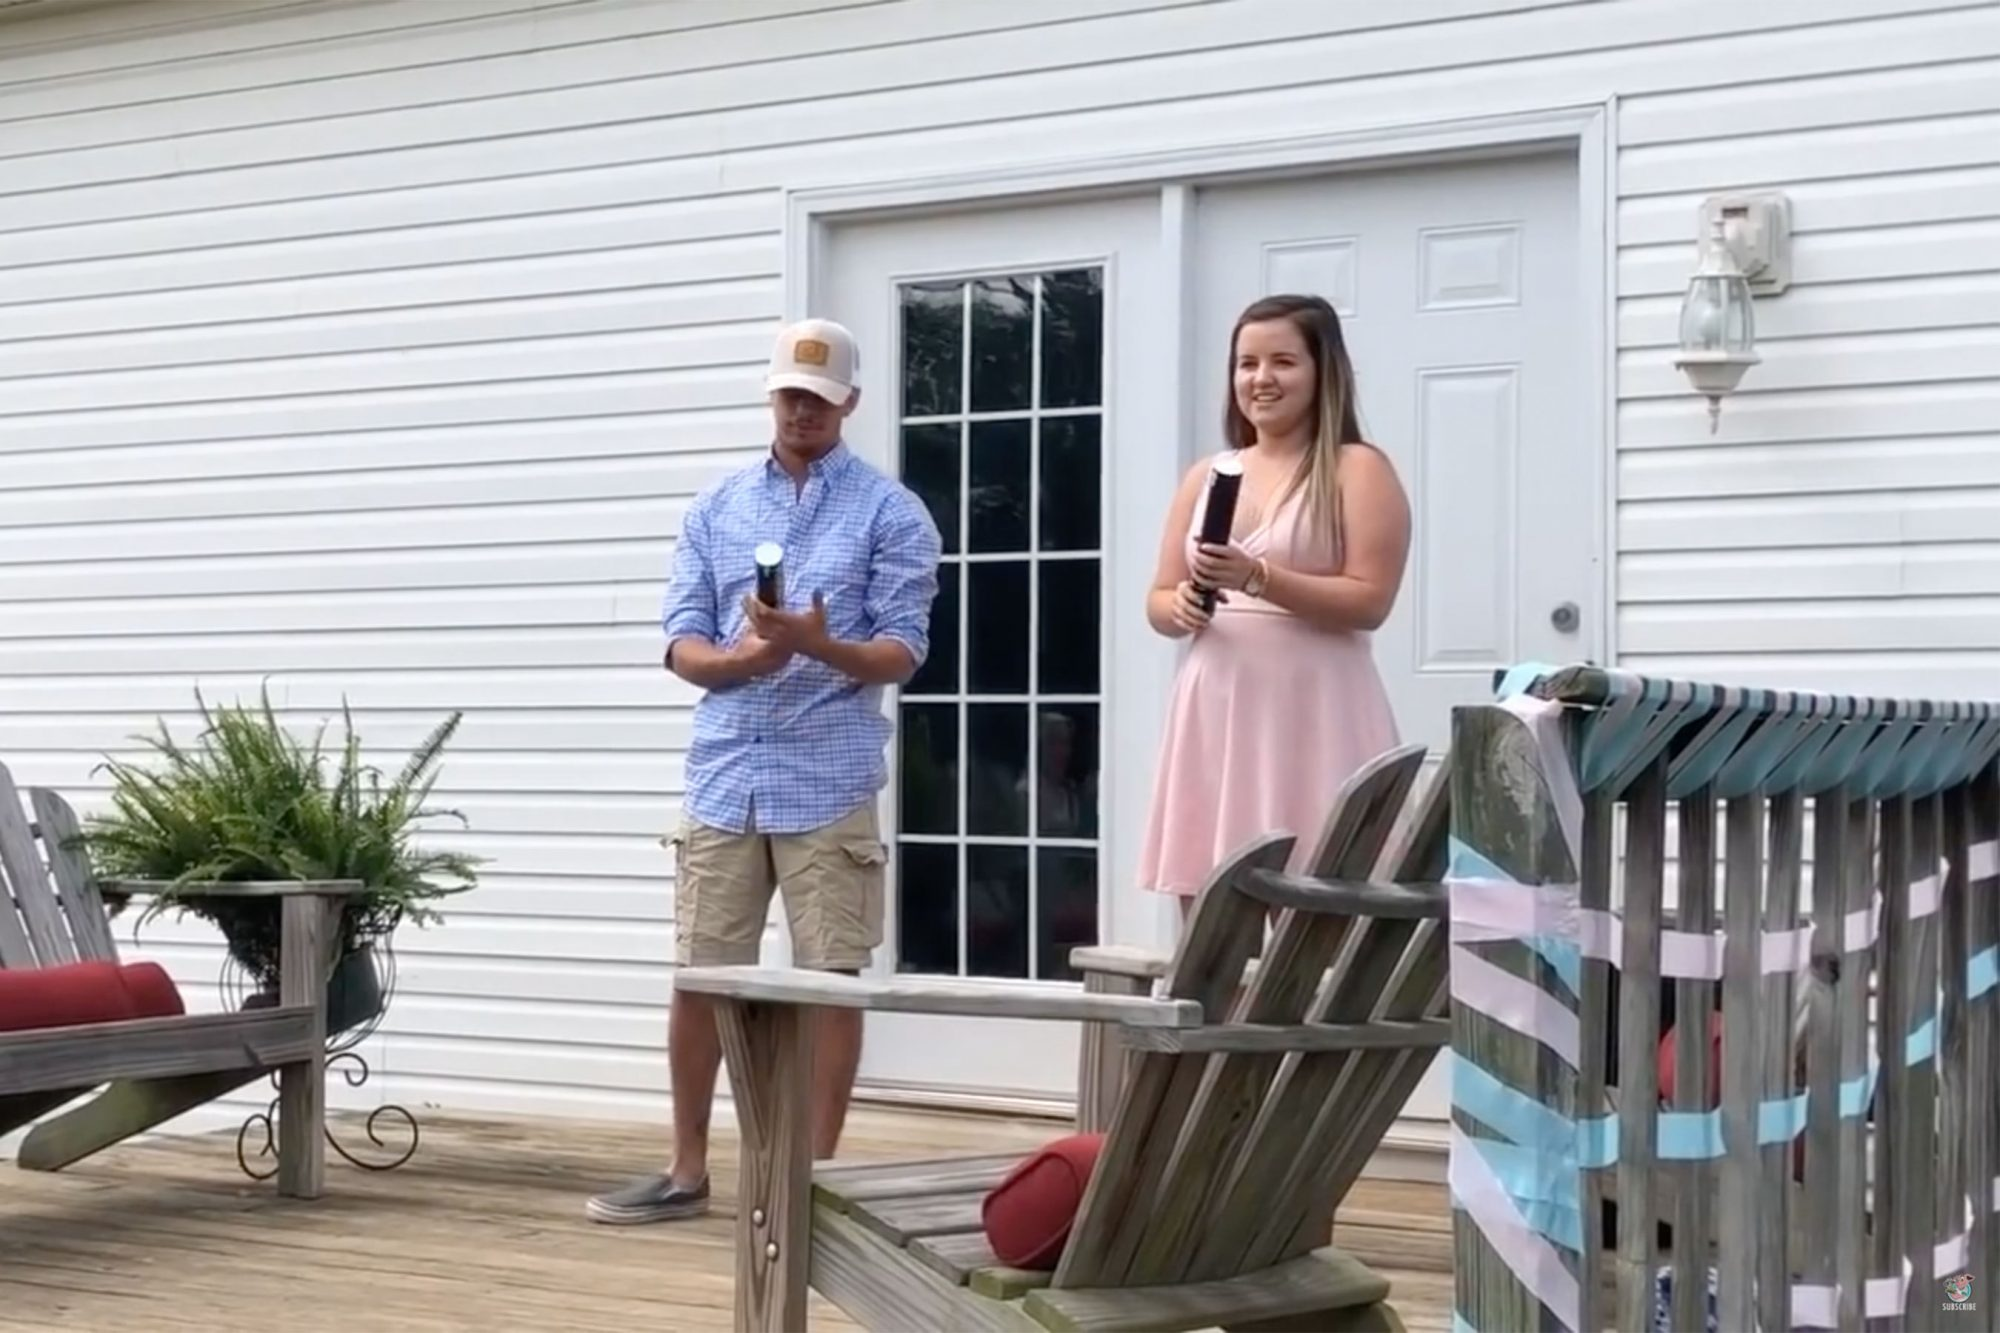 'Gender Reveal' Goes Terribly Wrong When Air Cannon Injures Dad-to-Be's Groin